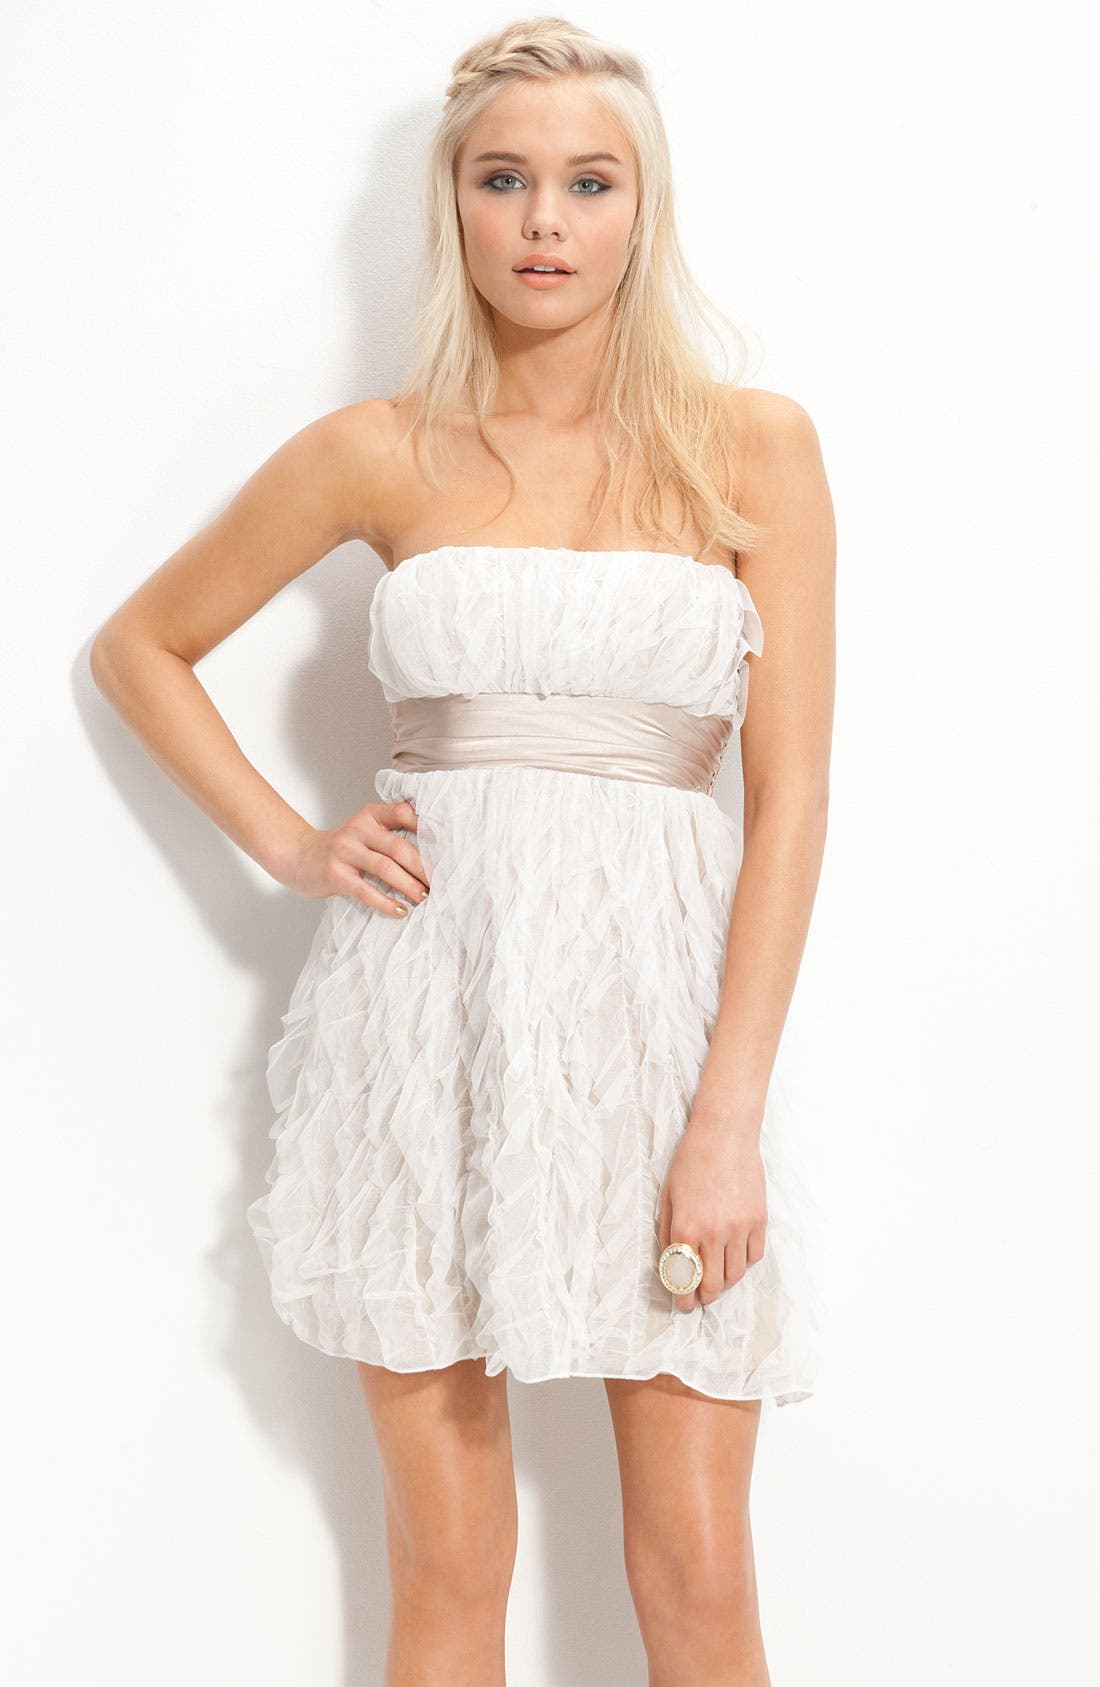 Alternate Image 1 Selected - Jump Apparel Satin Sash Strapless Ruffle Dress (Juniors)